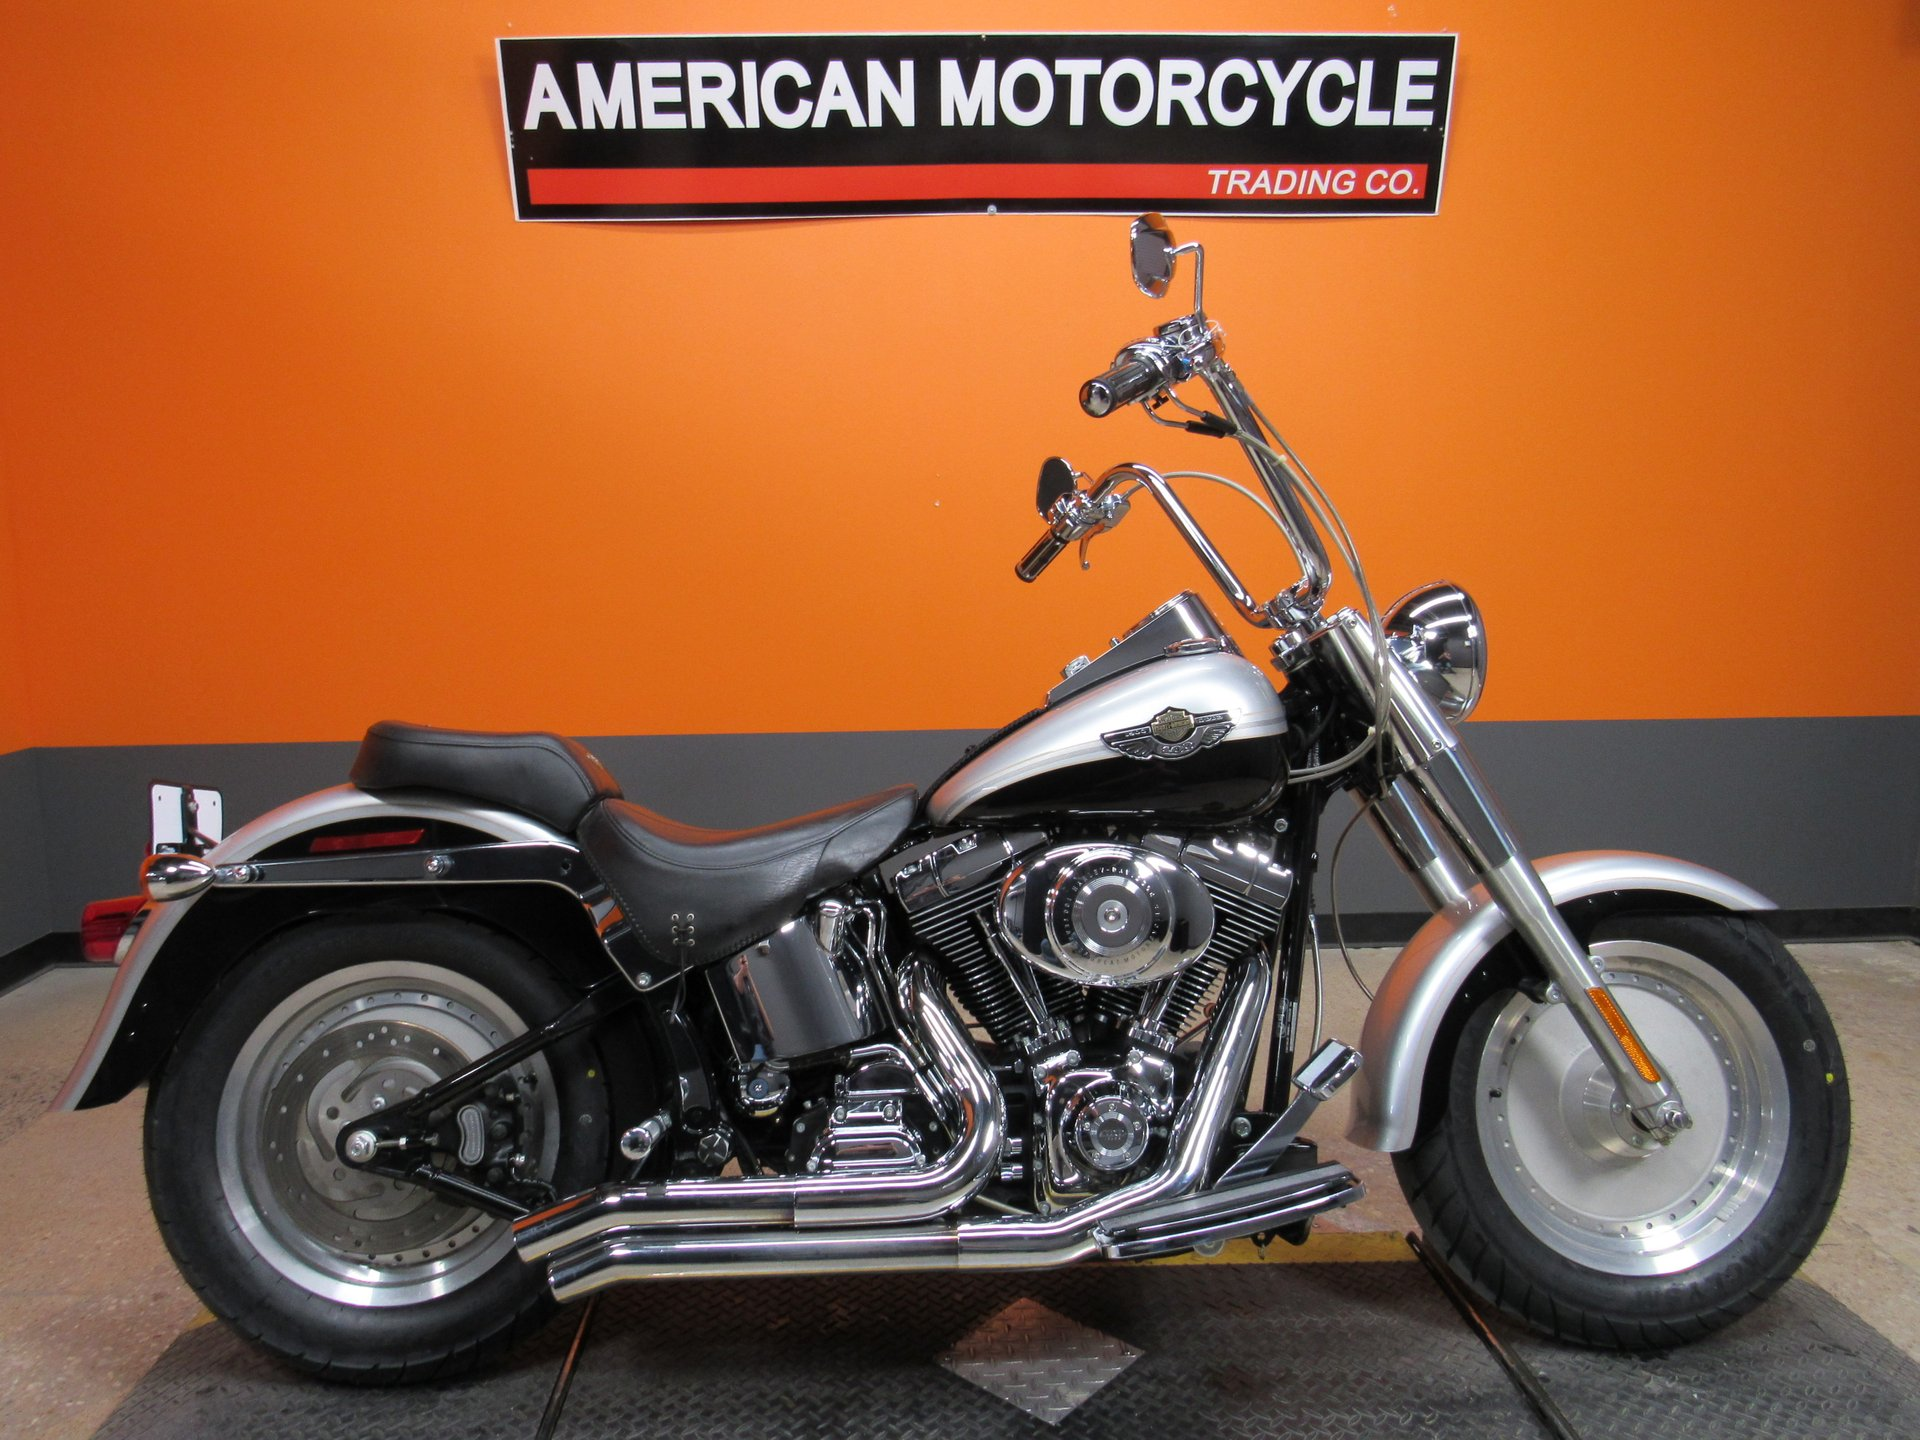 2003 harley davidson softail fat boy flstfi